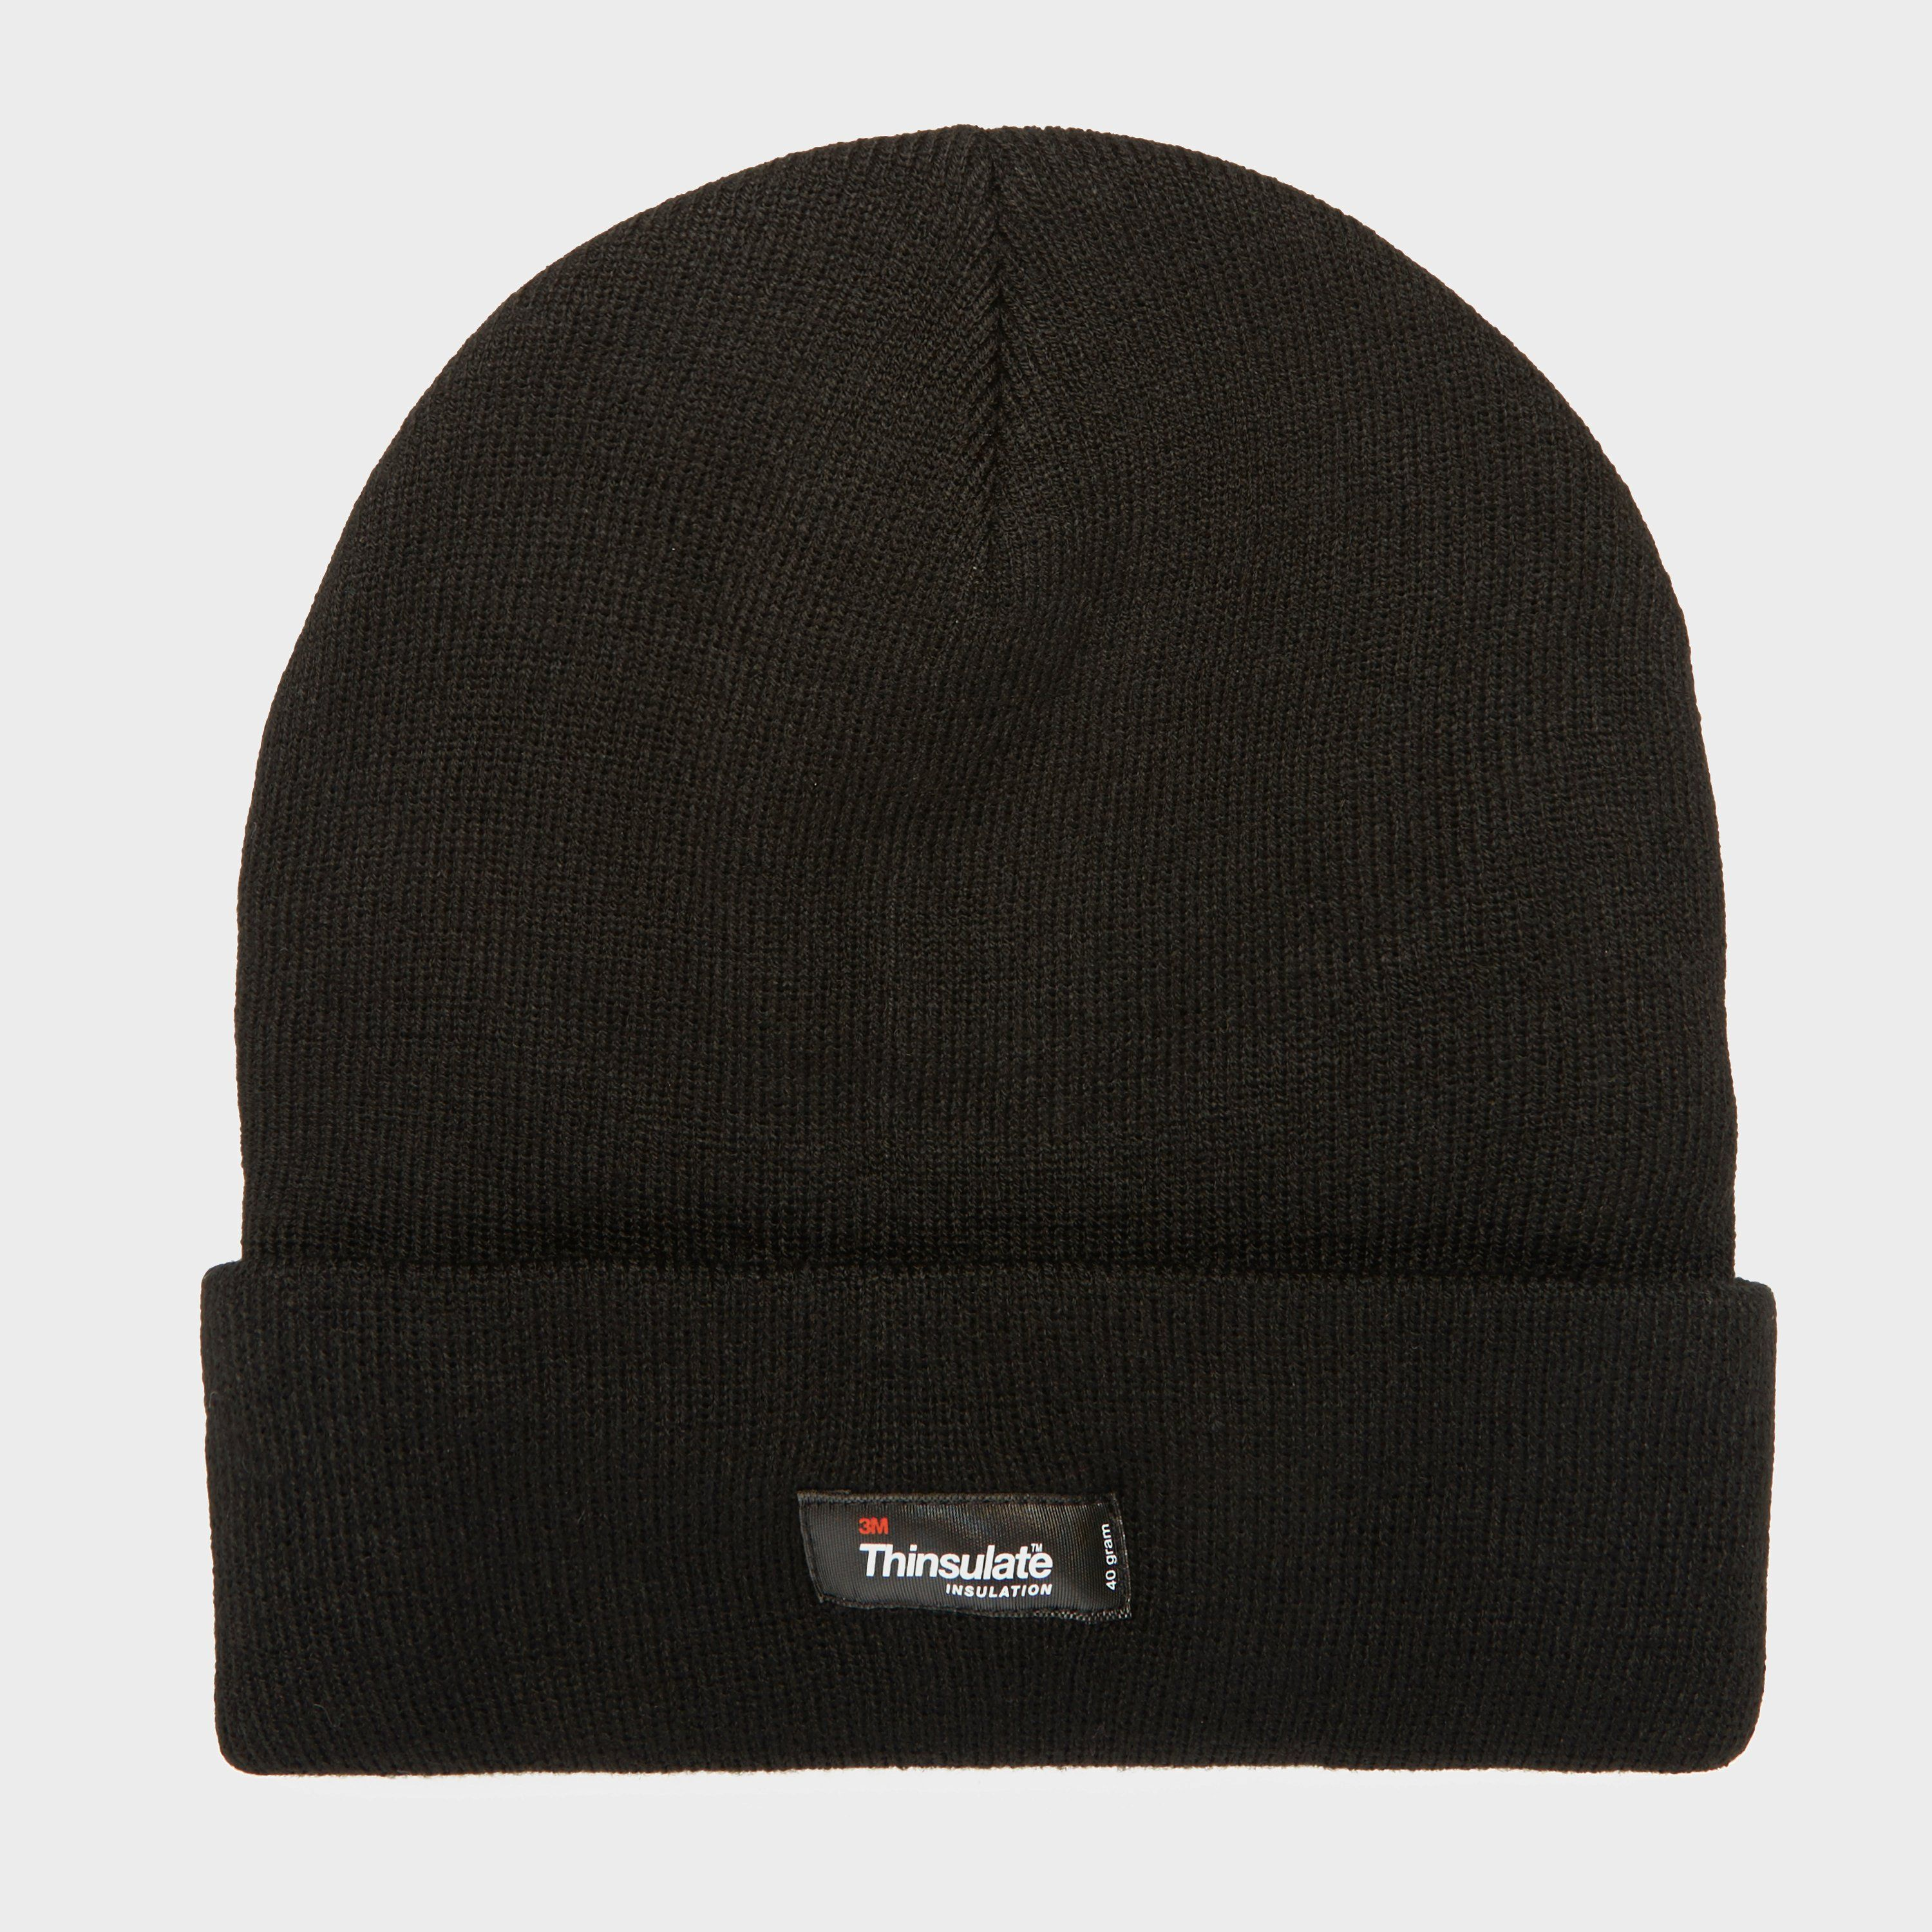 PETER STORM Unisex Thinsualte Knit Beanie